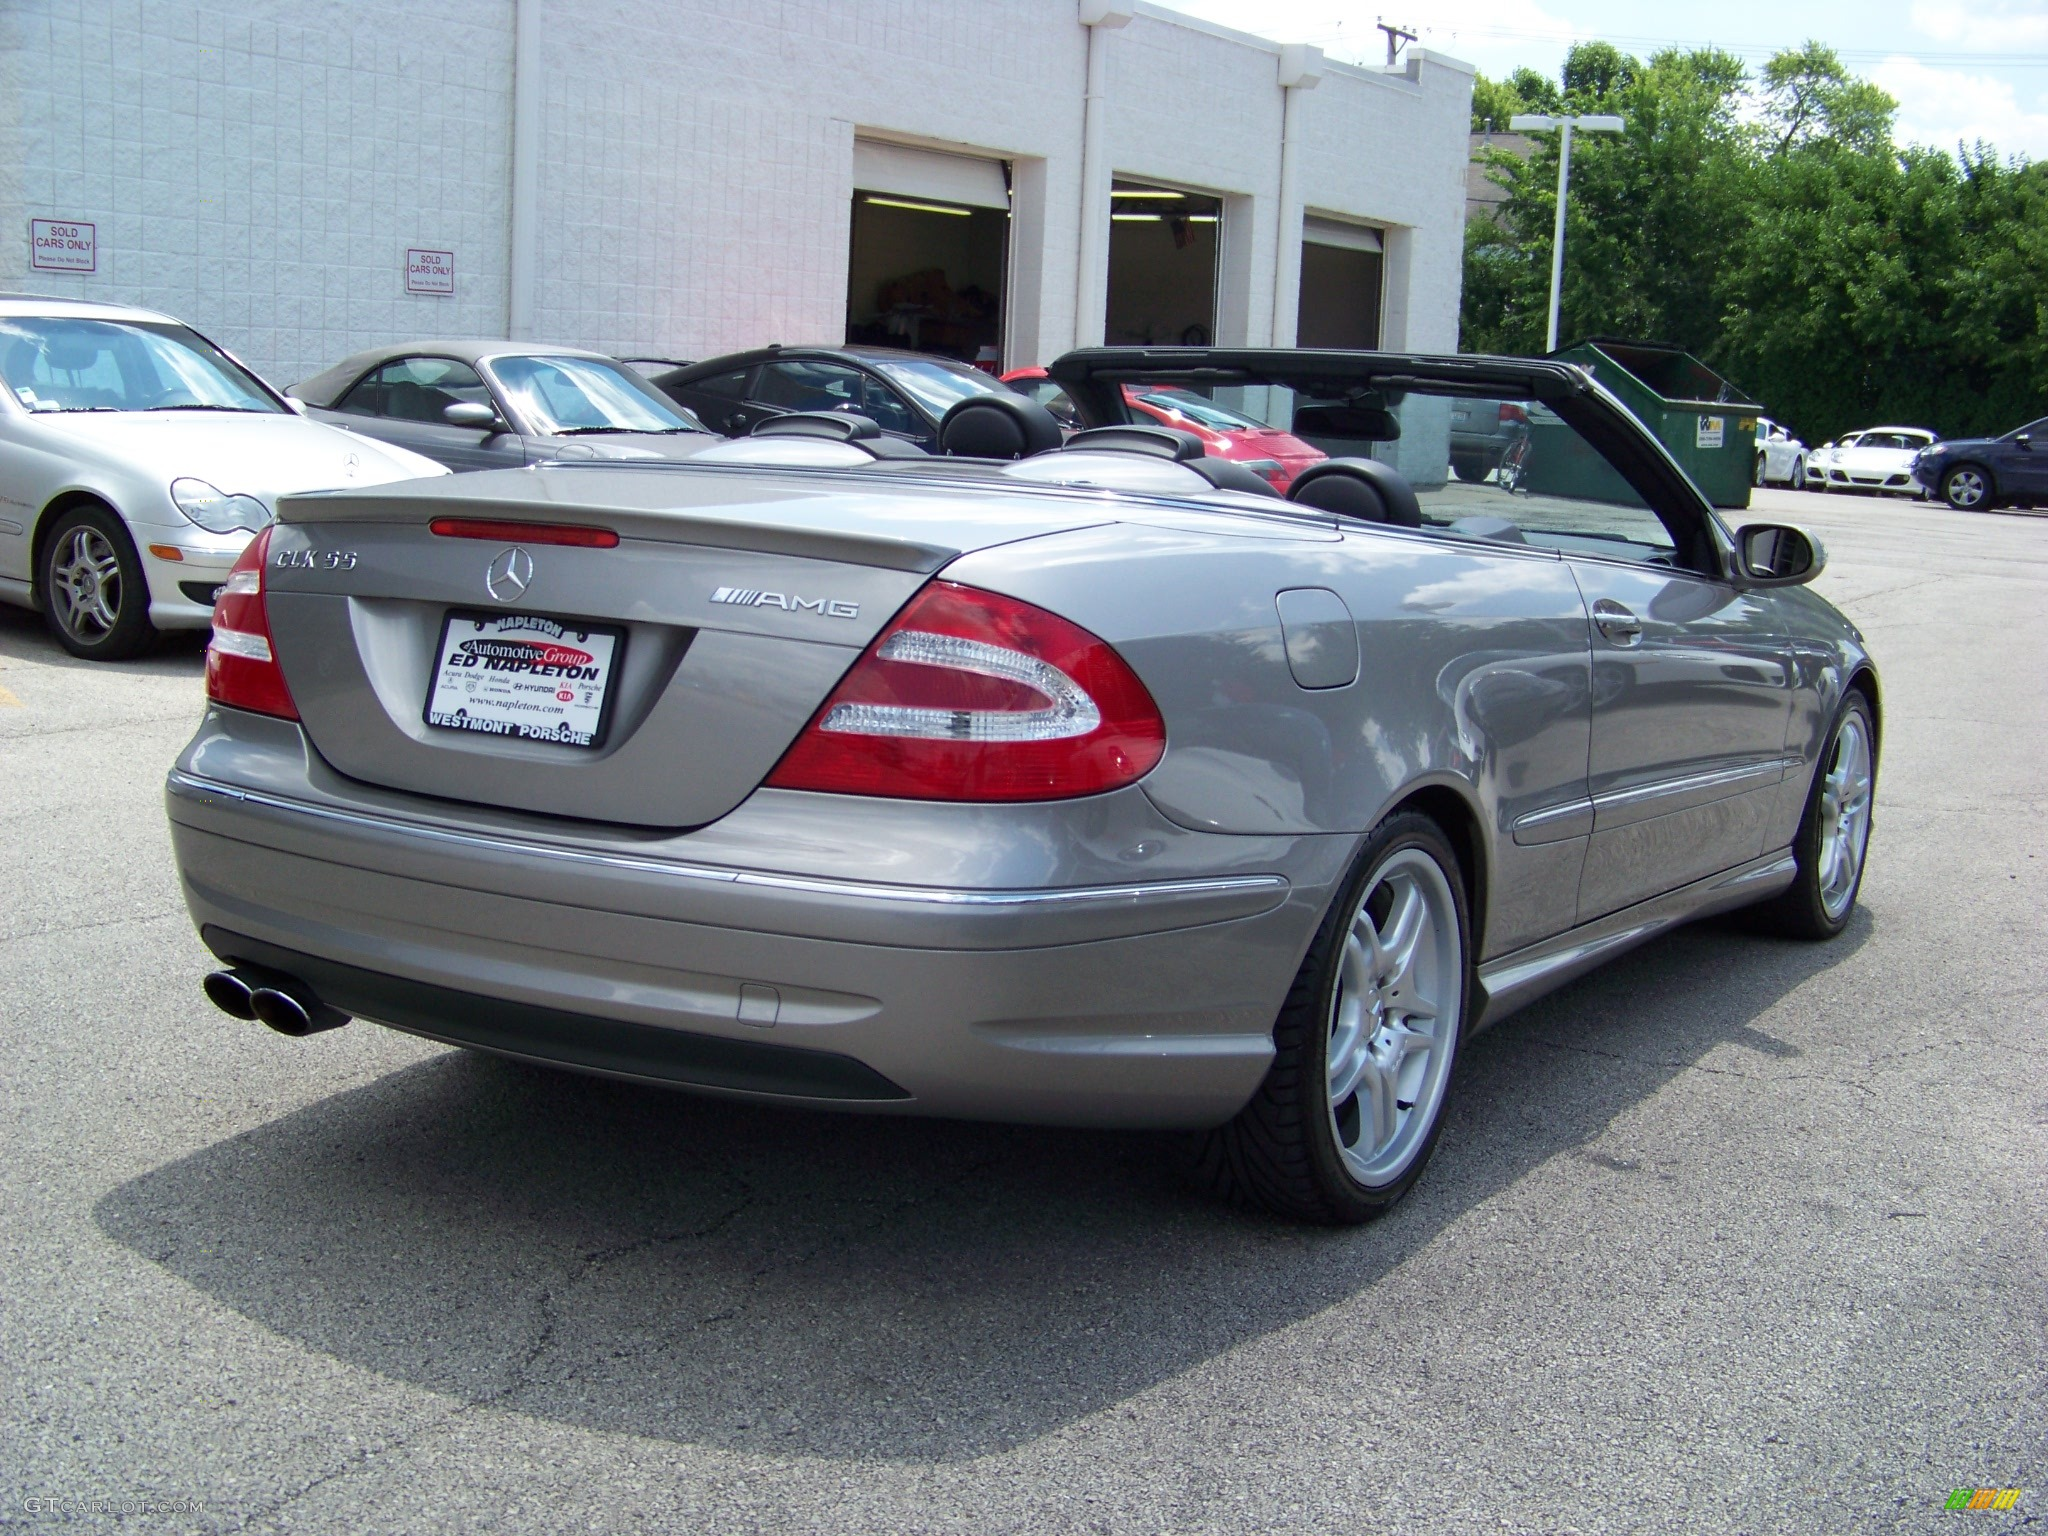 2005 pewter metallic mercedes benz clk 55 amg cabriolet. Black Bedroom Furniture Sets. Home Design Ideas